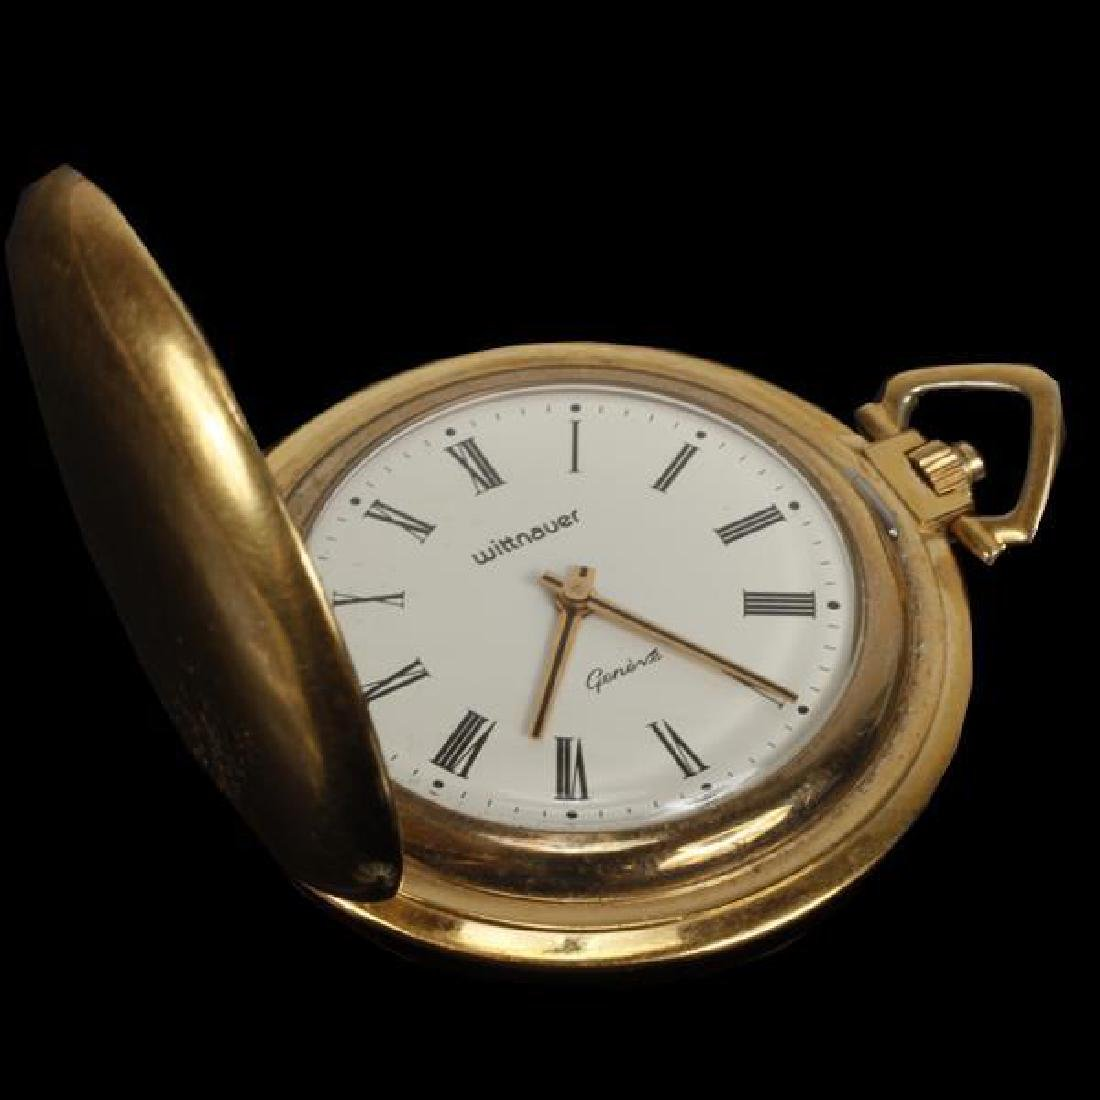 Geneve Gold filled pocket watch